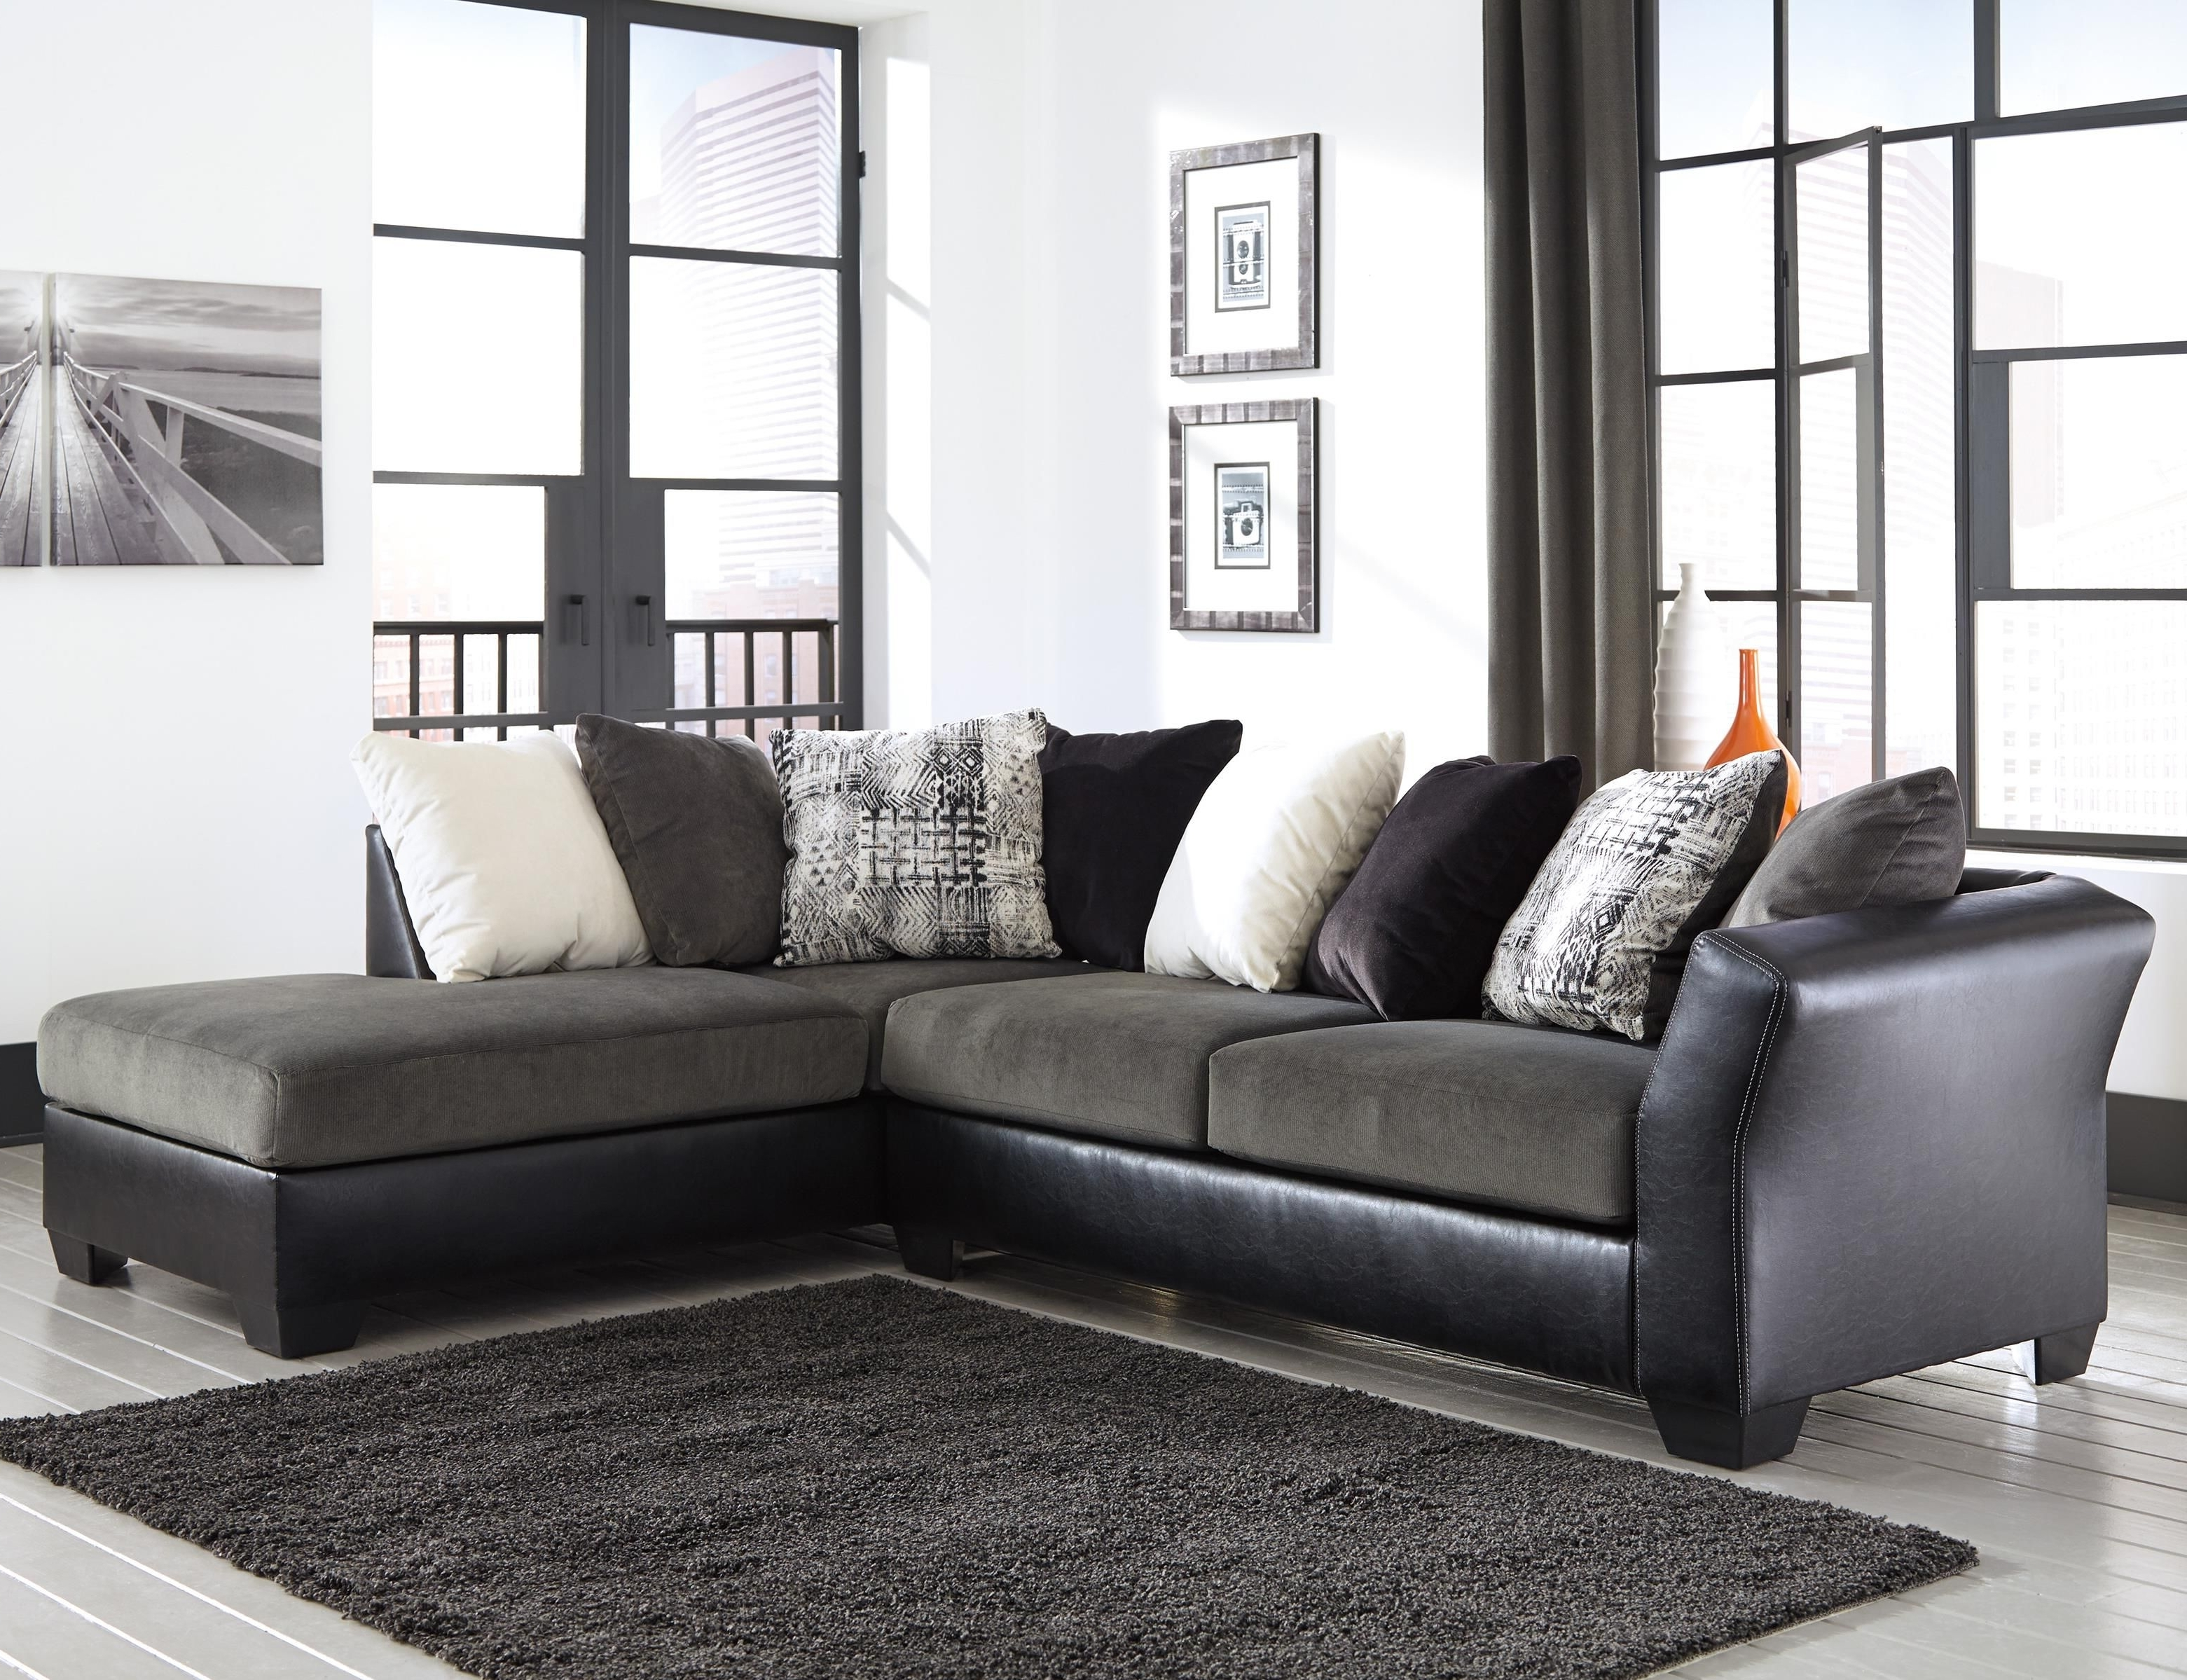 Well Known Murfreesboro Tn Sectional Sofas With Armant 2 Piece Sectional With Right Chaisesignature Design (View 14 of 15)